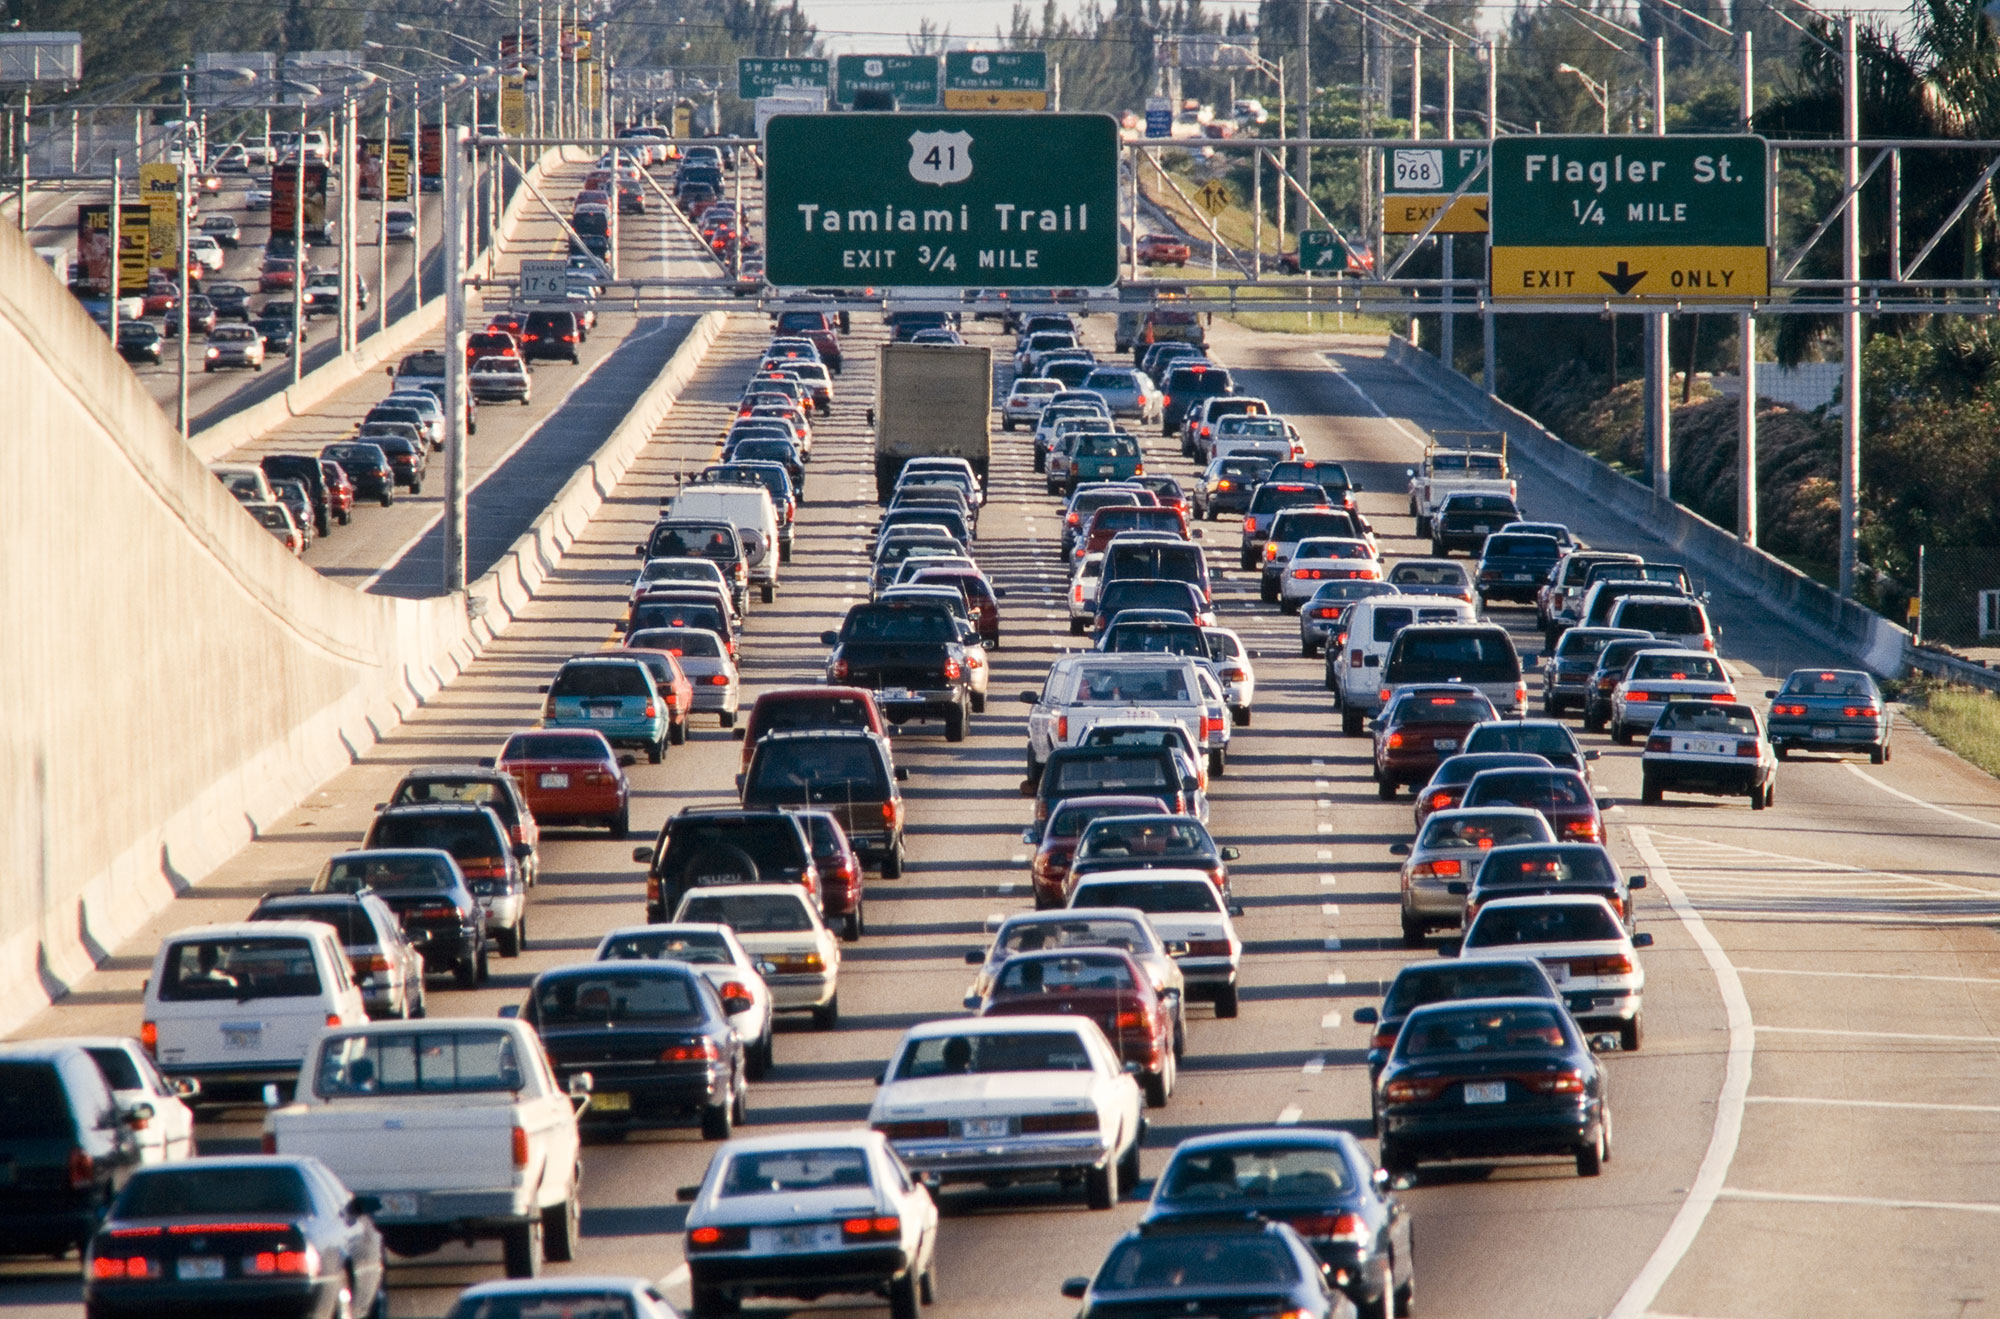 Used Suvs Near Me >> 10 Most-Congested Highways & Cities In The U.S.